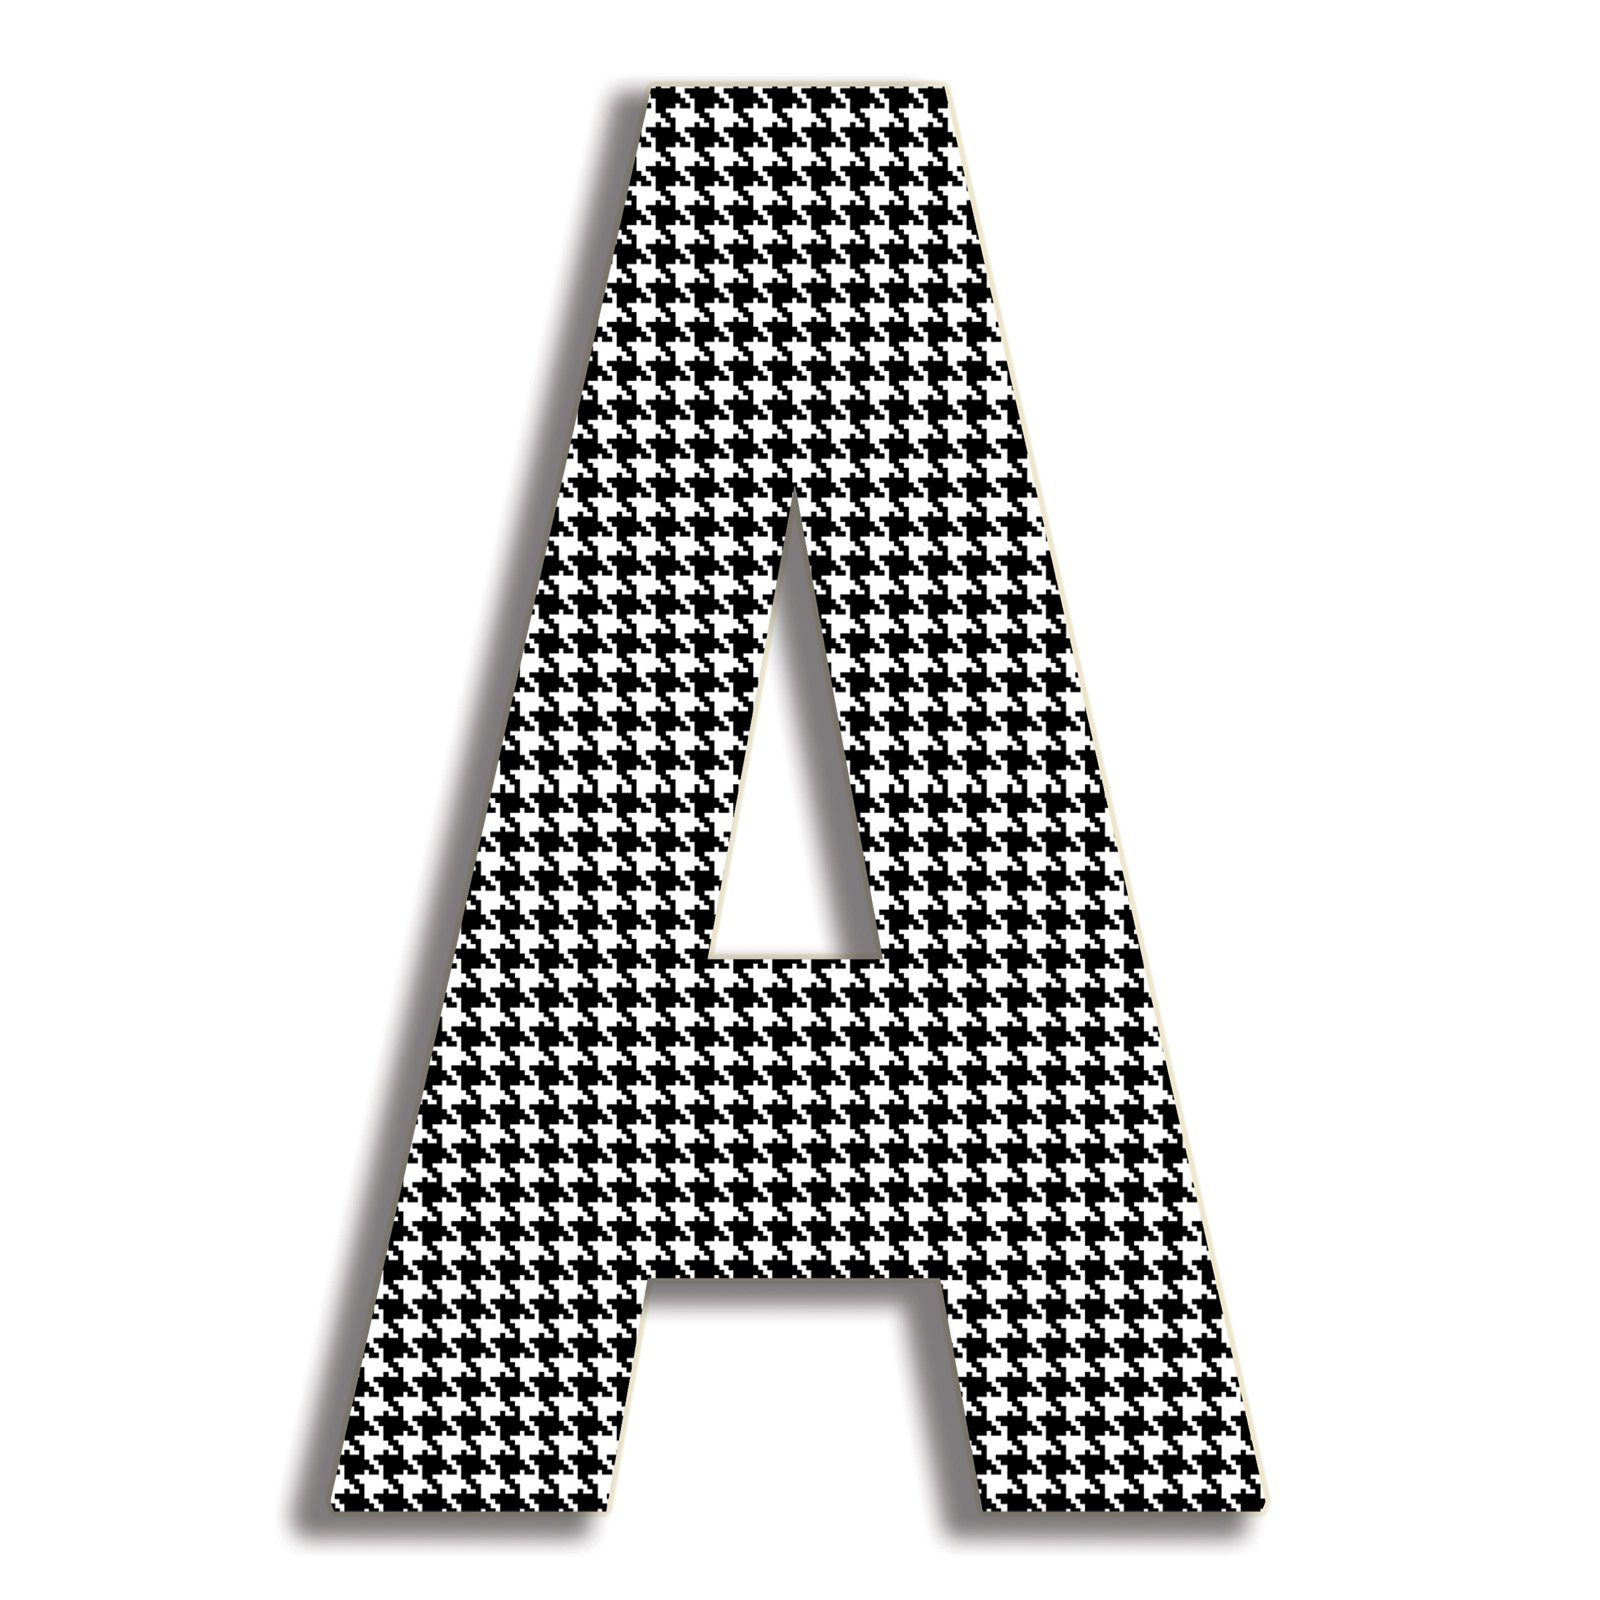 The Stupell Home Decor Collection Stupell Industries Oversized Black Hounds Tooth Hanging Initial